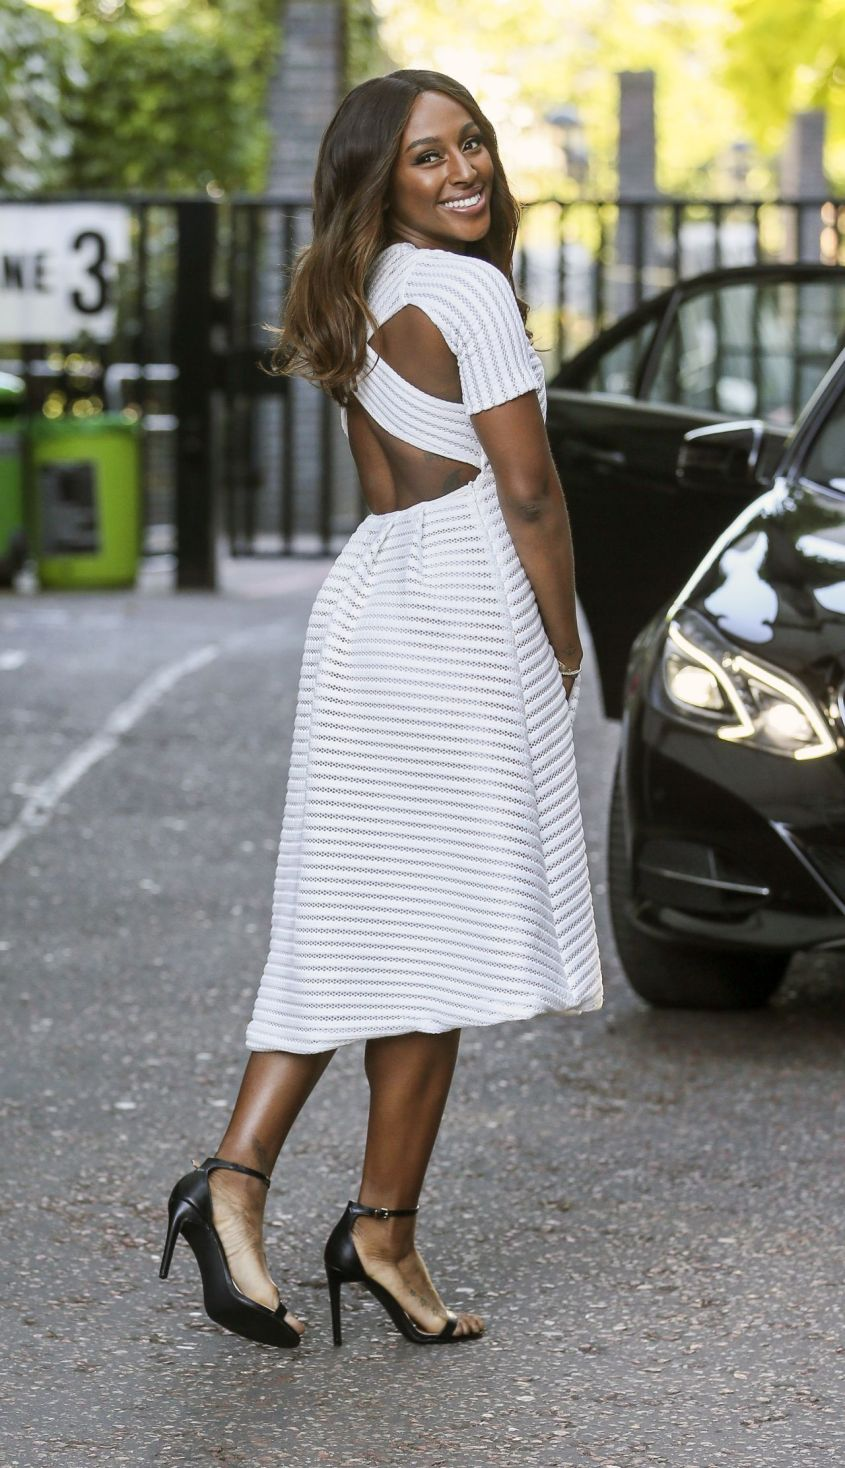 alexandra-burke-leaving-the-itv-studios-london-7-19-2016-6